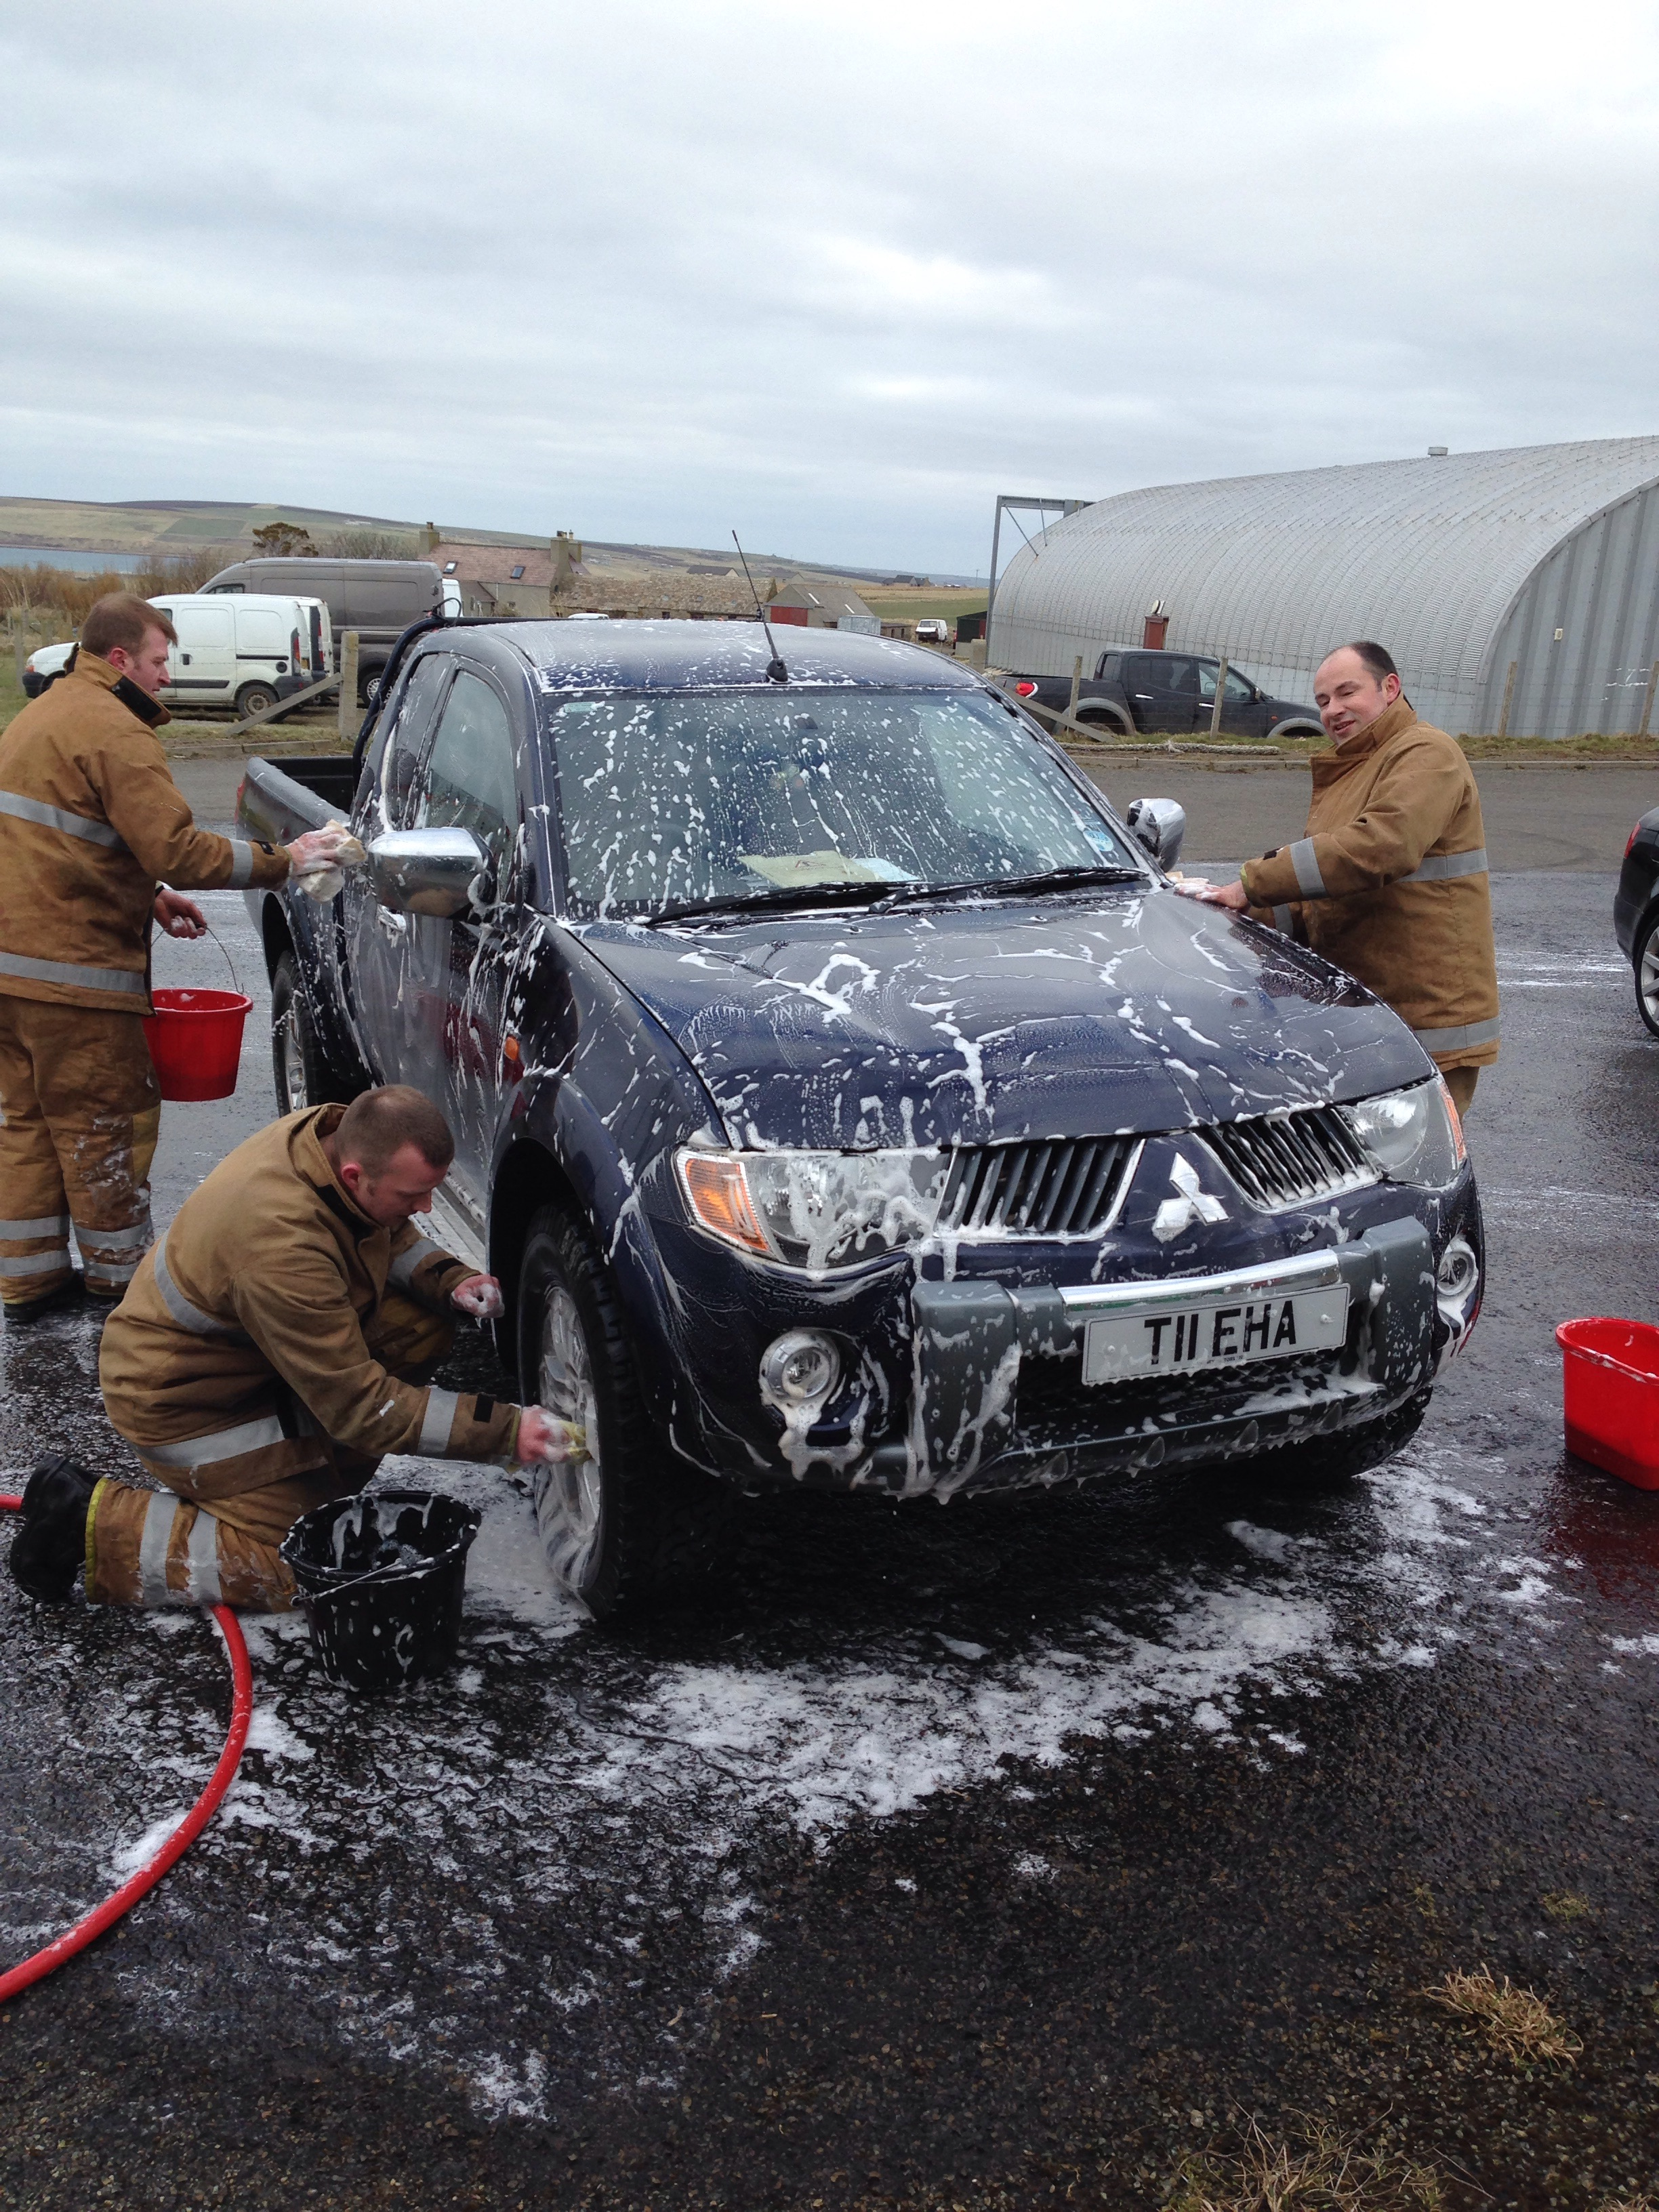 St Margaret's Hope station in Orkney raised over £500 for charity during National Car Wash Day